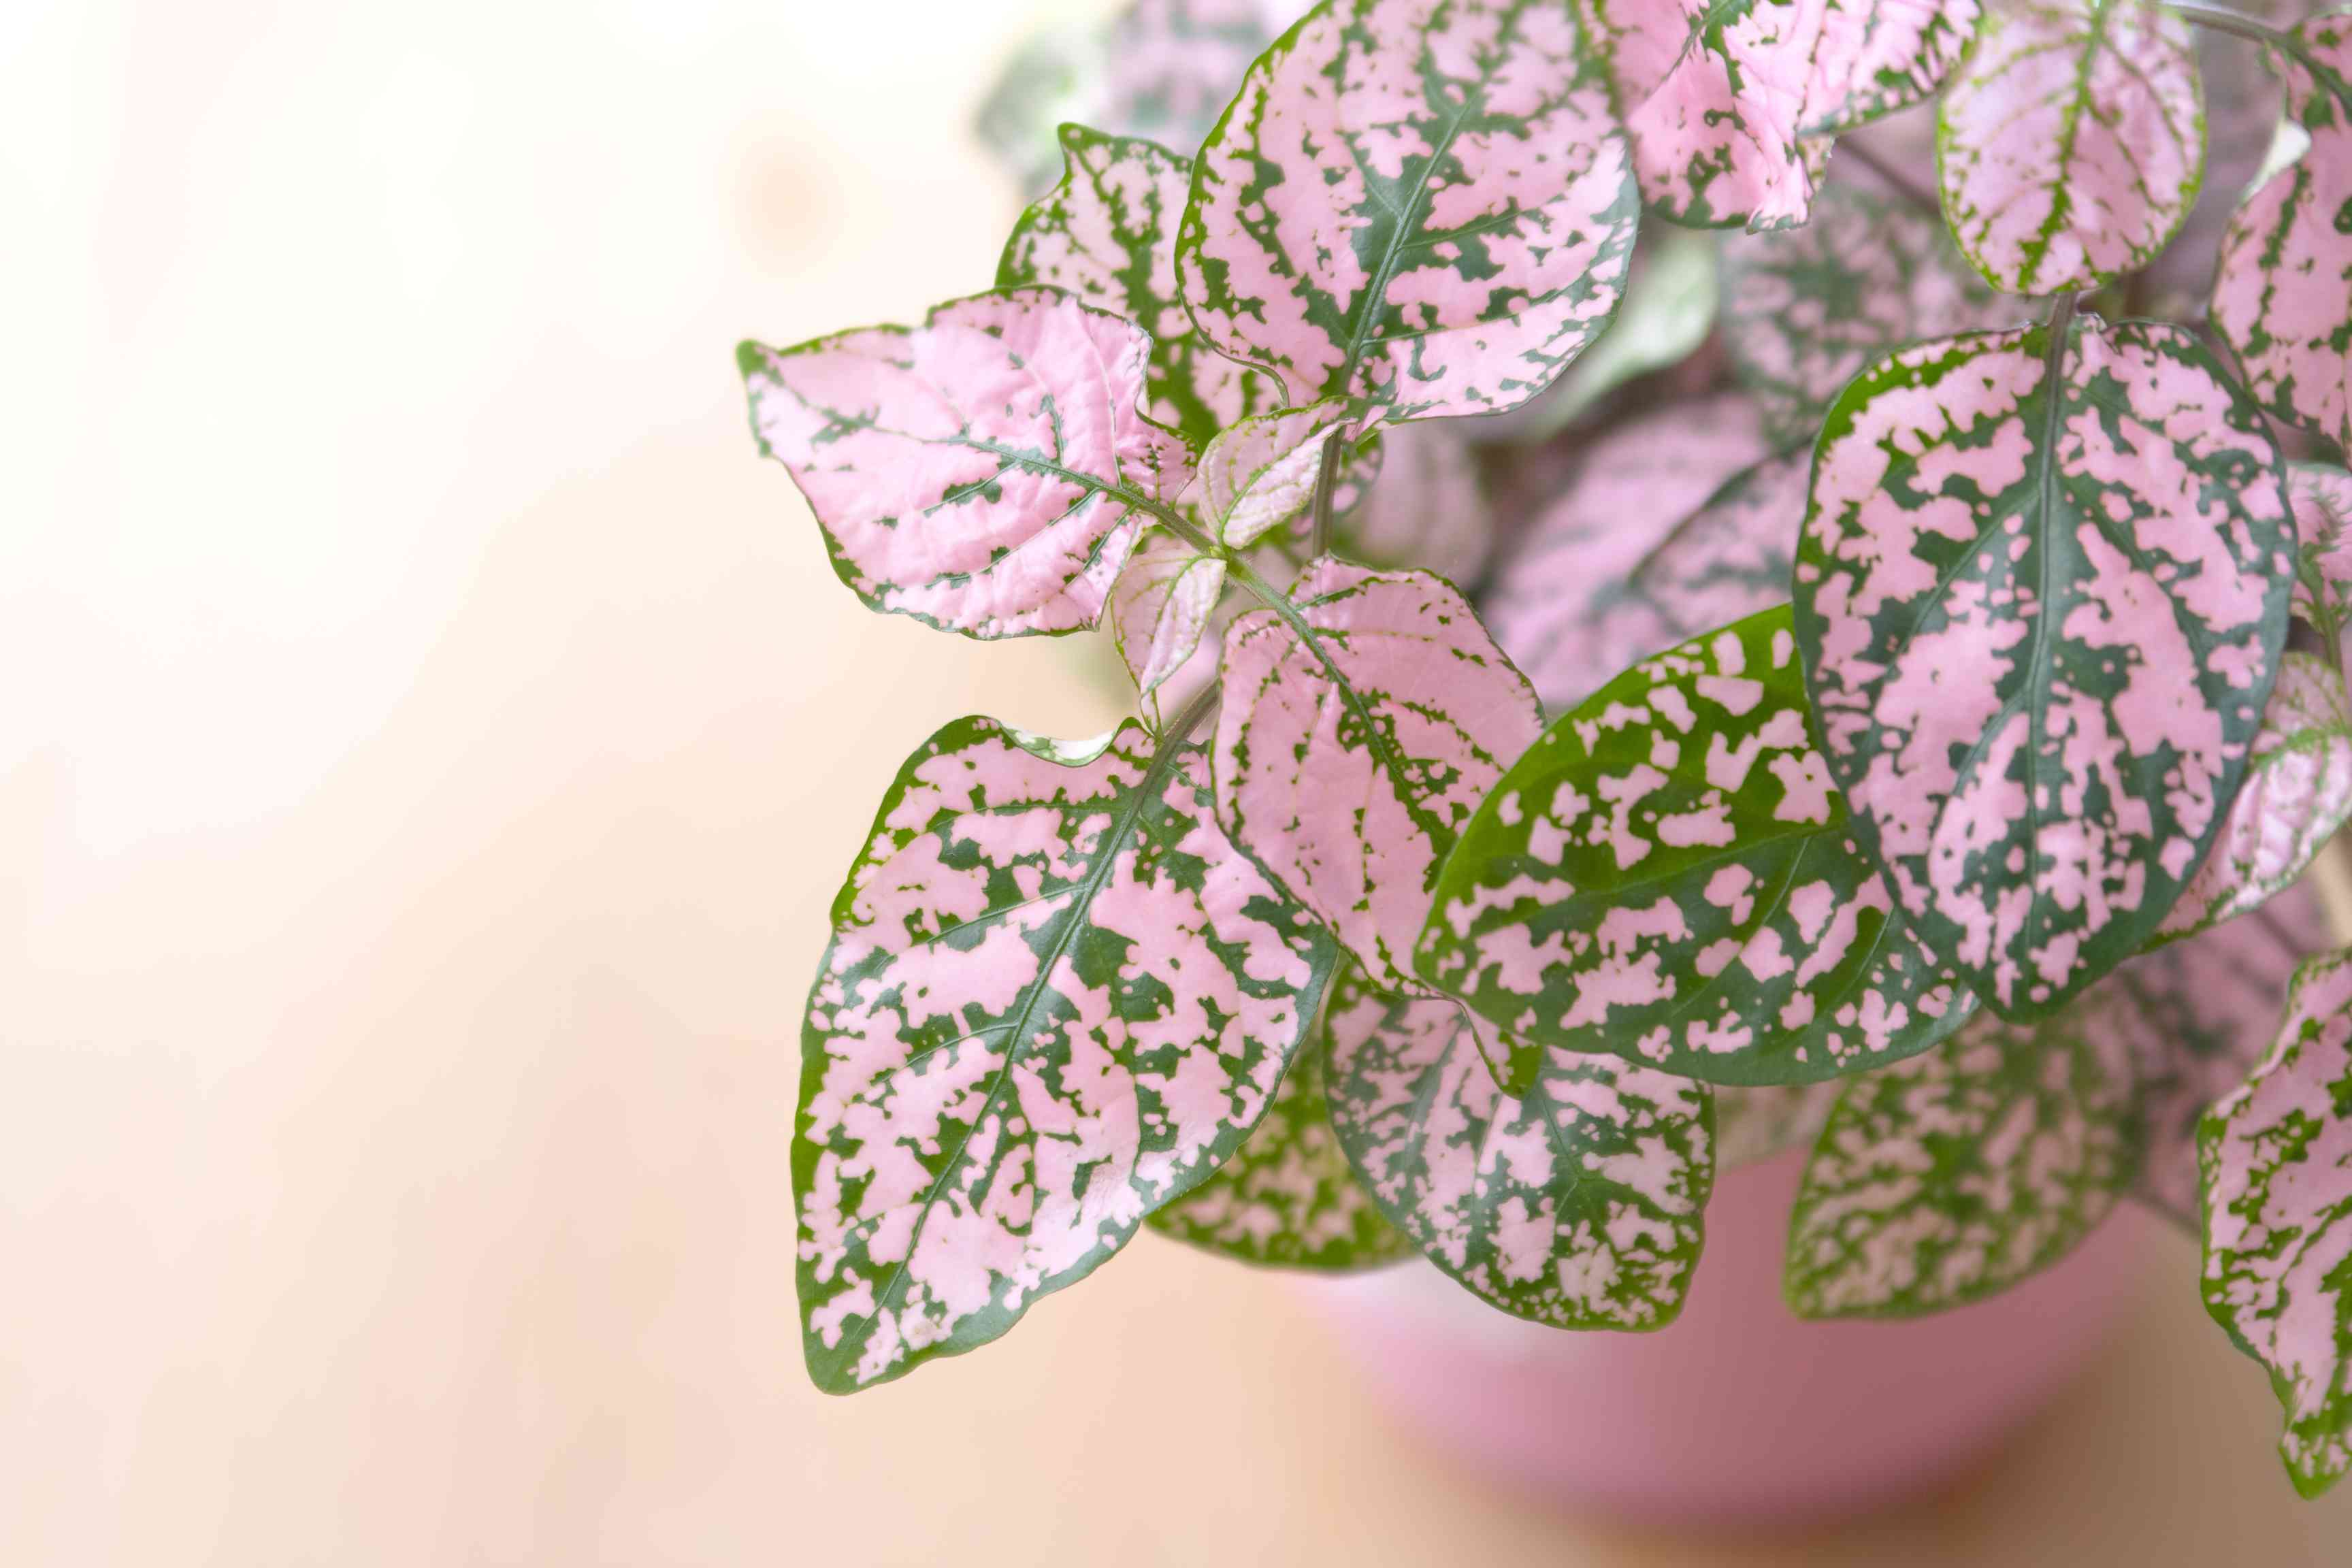 Polka dot plant close up in a pink pot